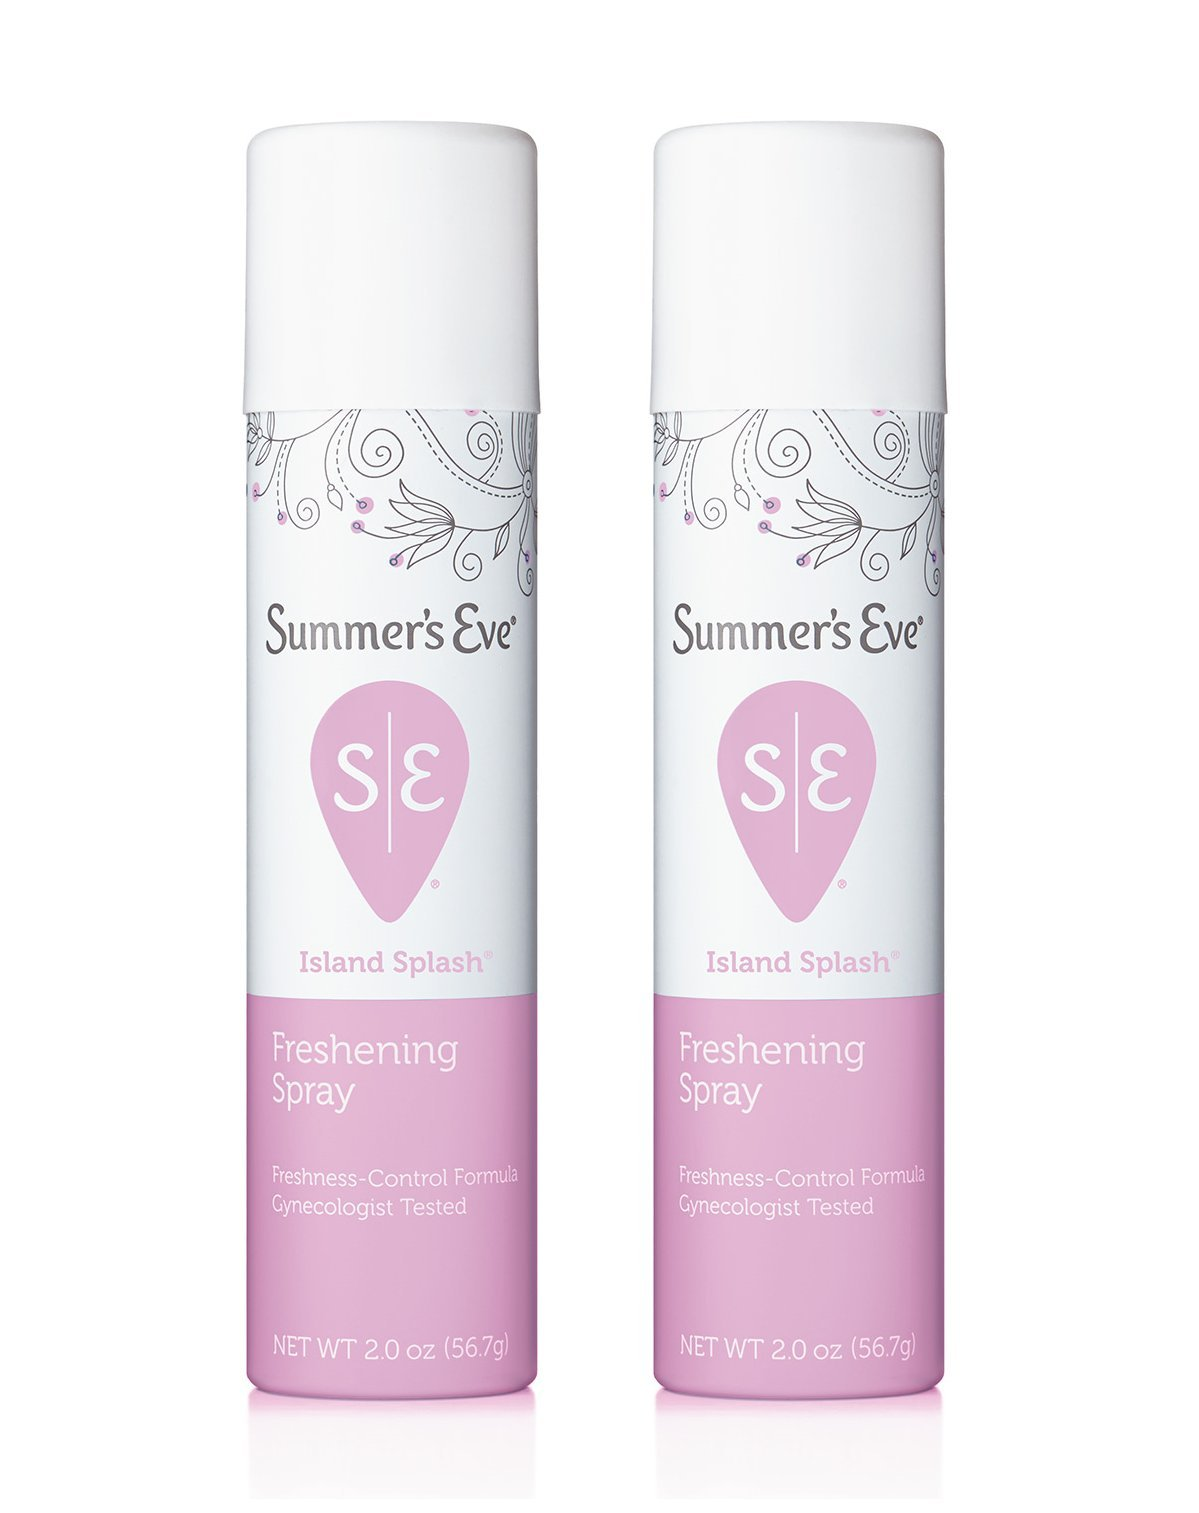 Summers Eve Freshening Spray 2 Ounce Island Splash (59ml) (2 Pack)